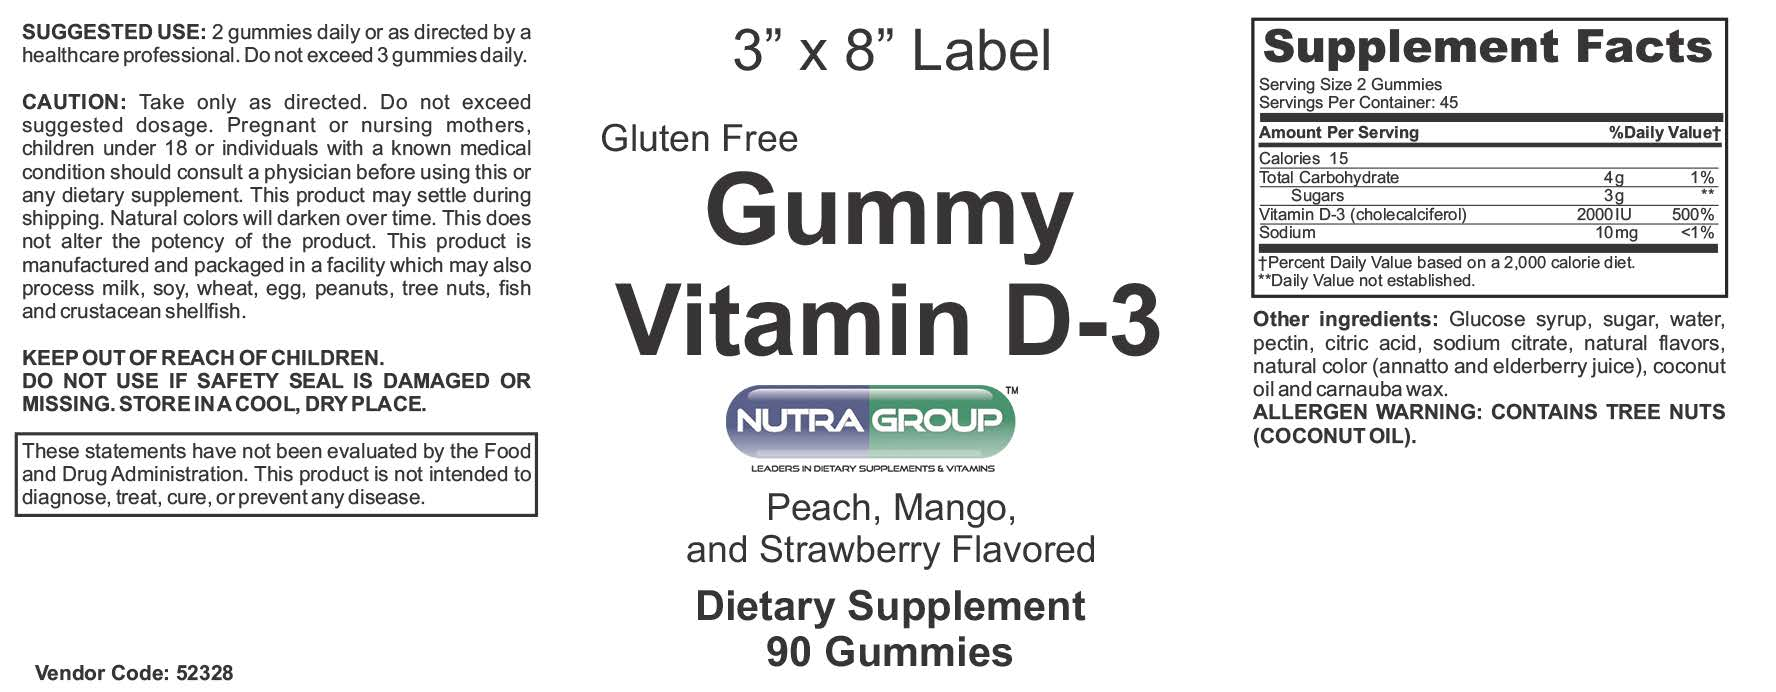 Private label Vitamin D3 Gummy